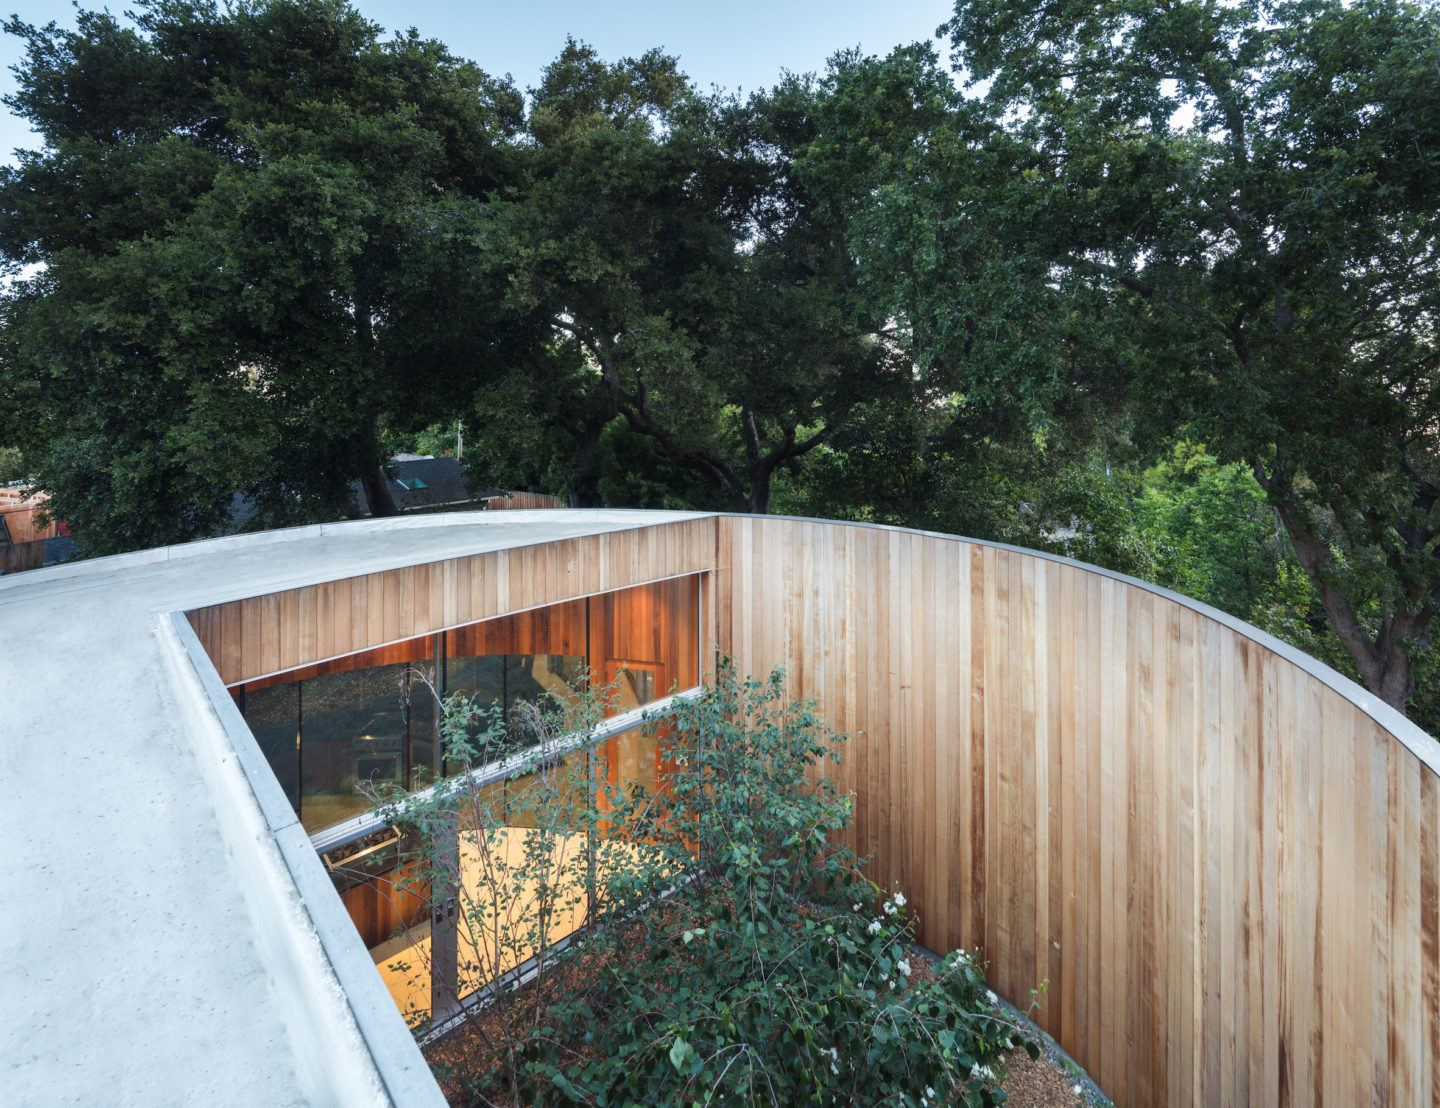 IGNANT-Architecture-Craig-Steely-Architecture-Roofless-House-12